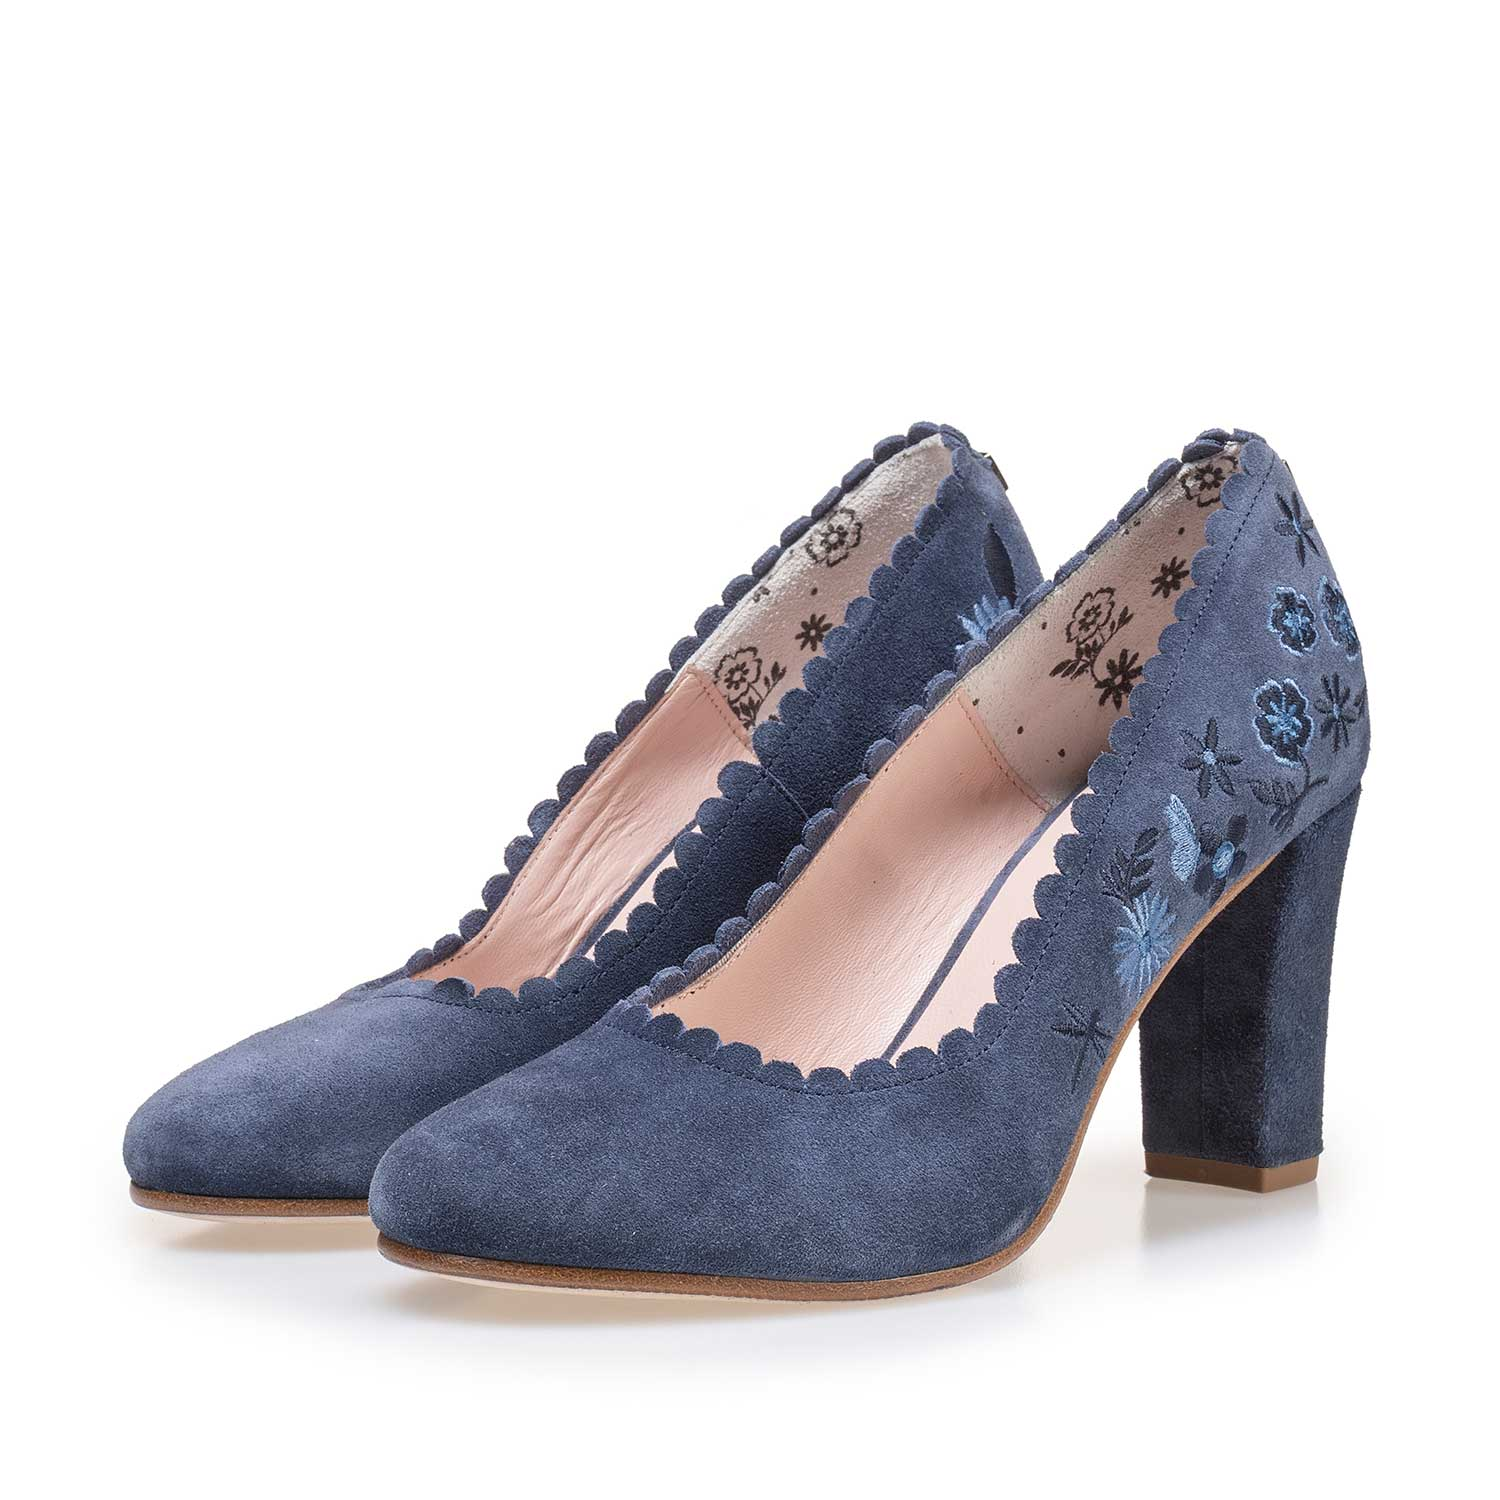 85238/00 - Blue suede leather pumps with floral embroidery stitching